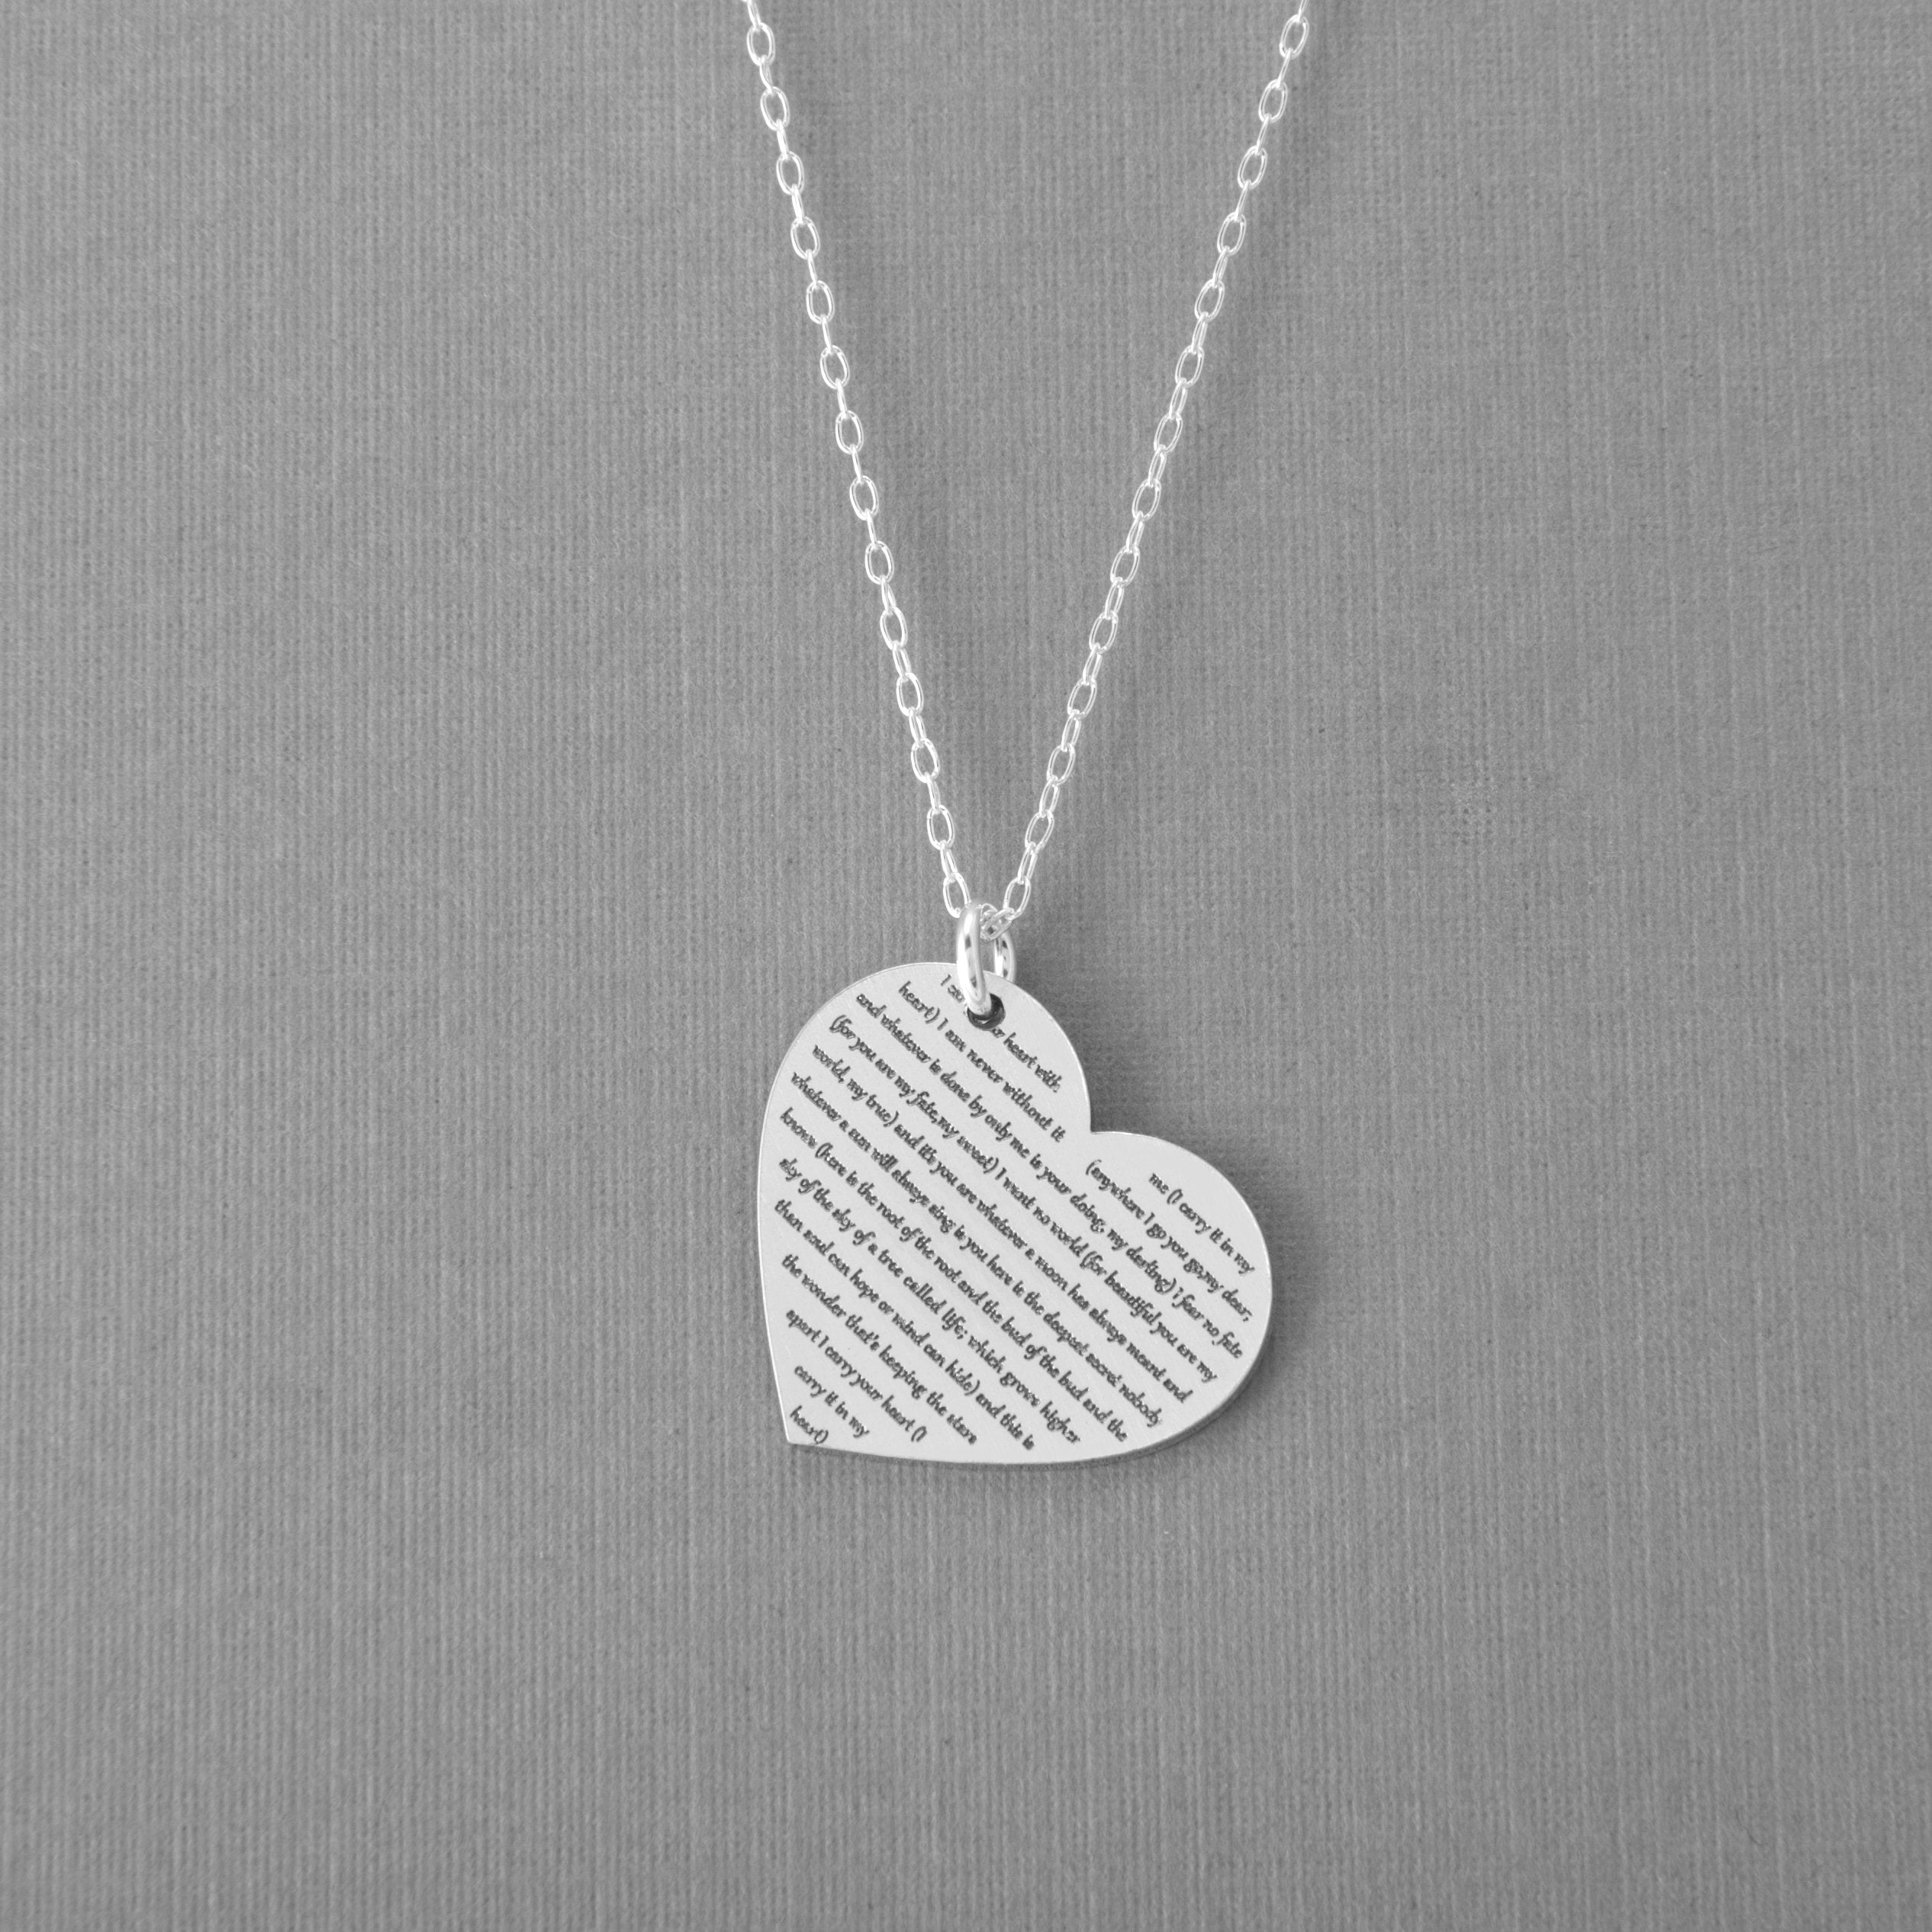 Personalized Heart Lyric Necklace Or Wedding Vows